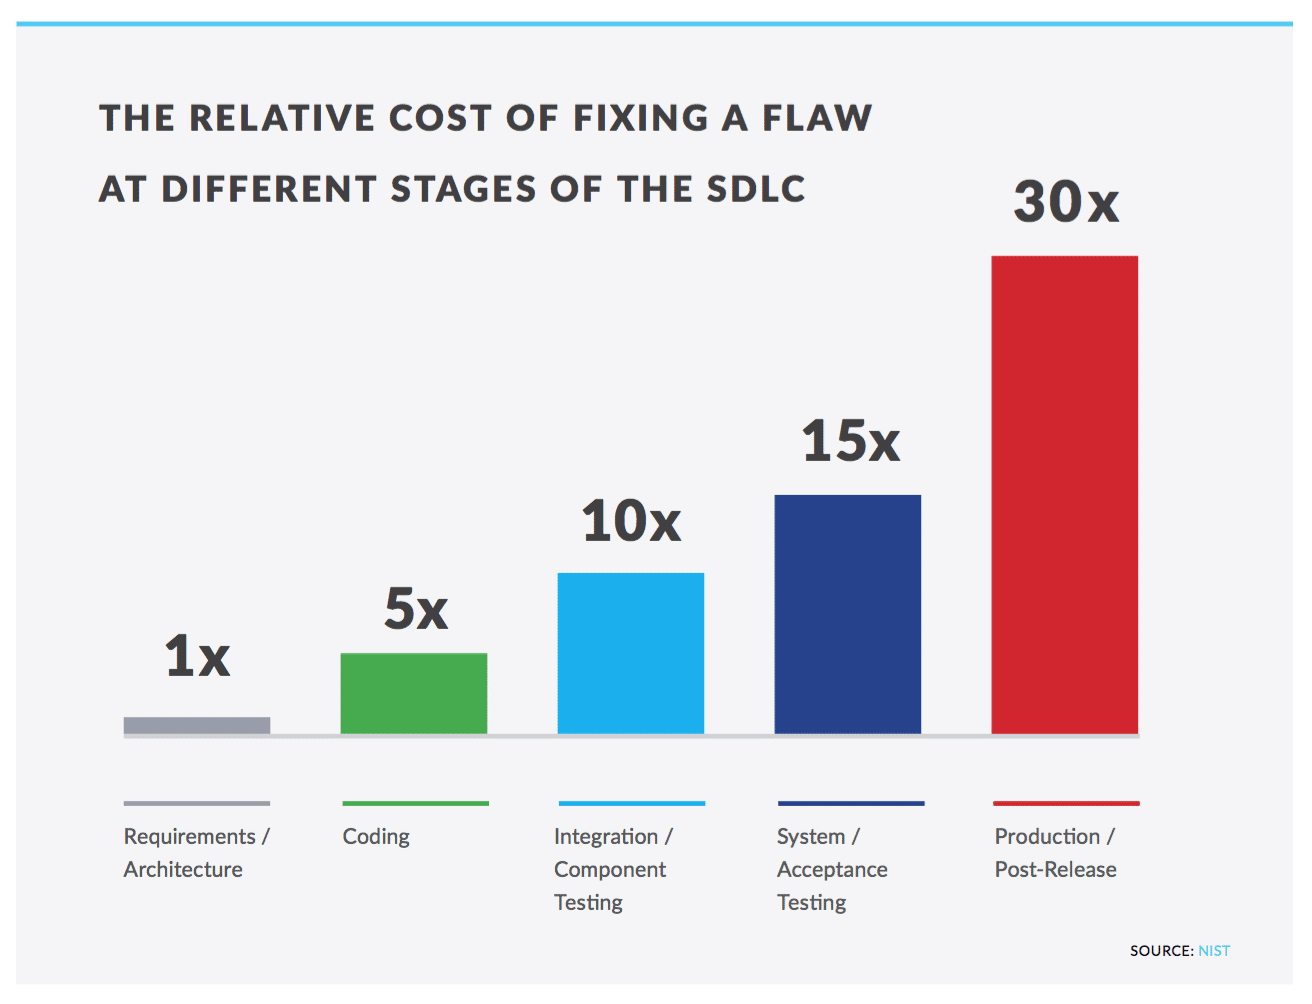 NIST: The relative cost of fixing a flaw at different stages of the SLDC